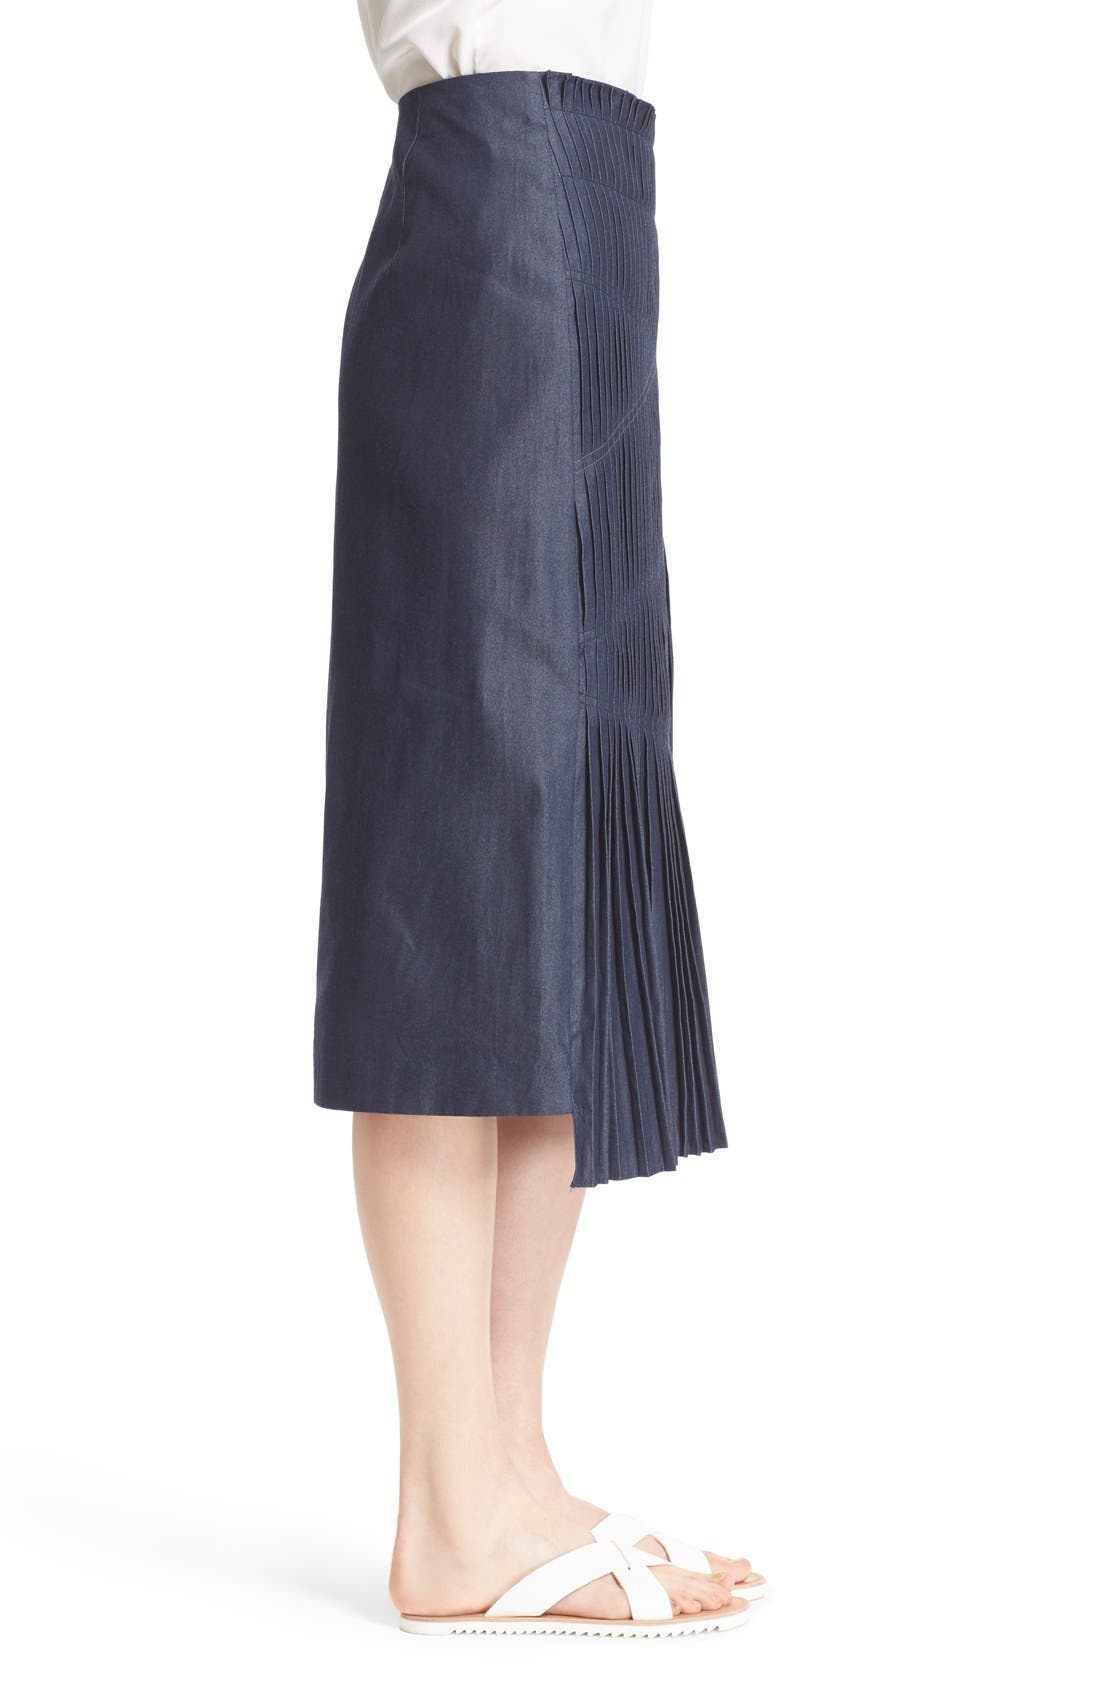 'Manuela' Pleated Cotton Midi Skirt,                             Alternate thumbnail 3, color,                             Steel Denim